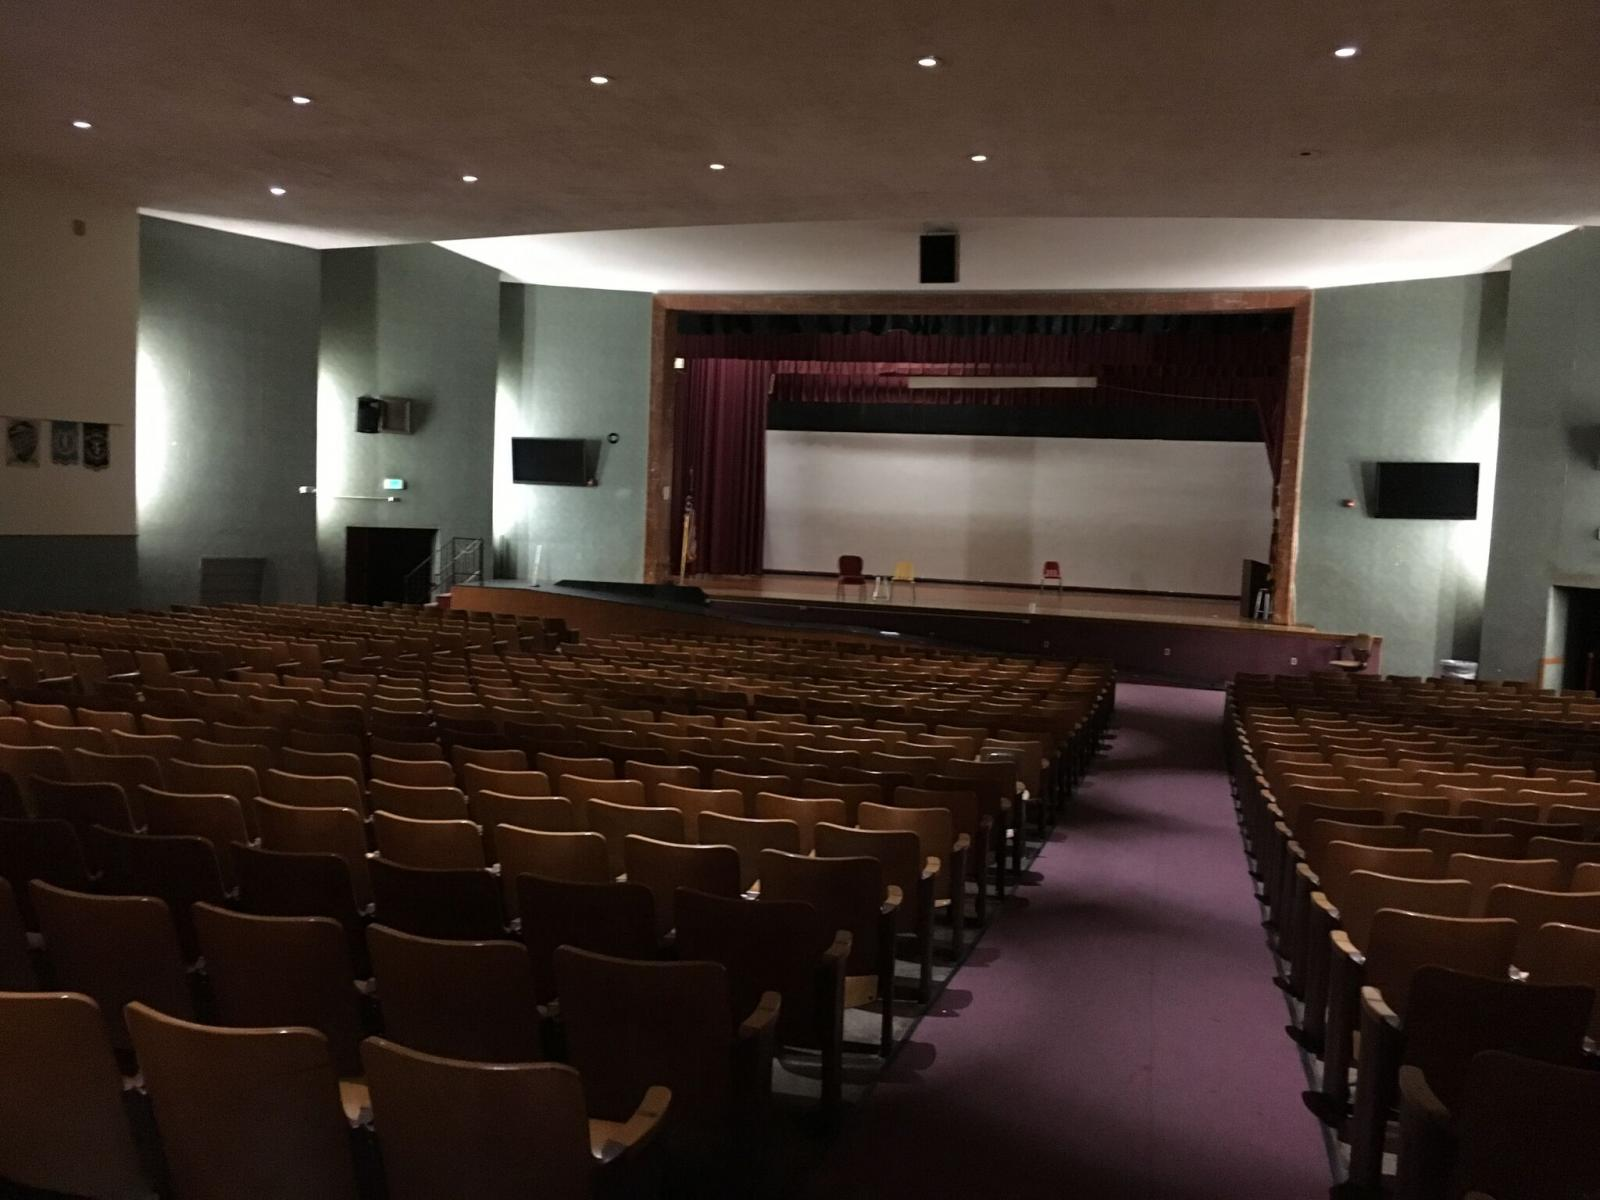 Before: Auditorium